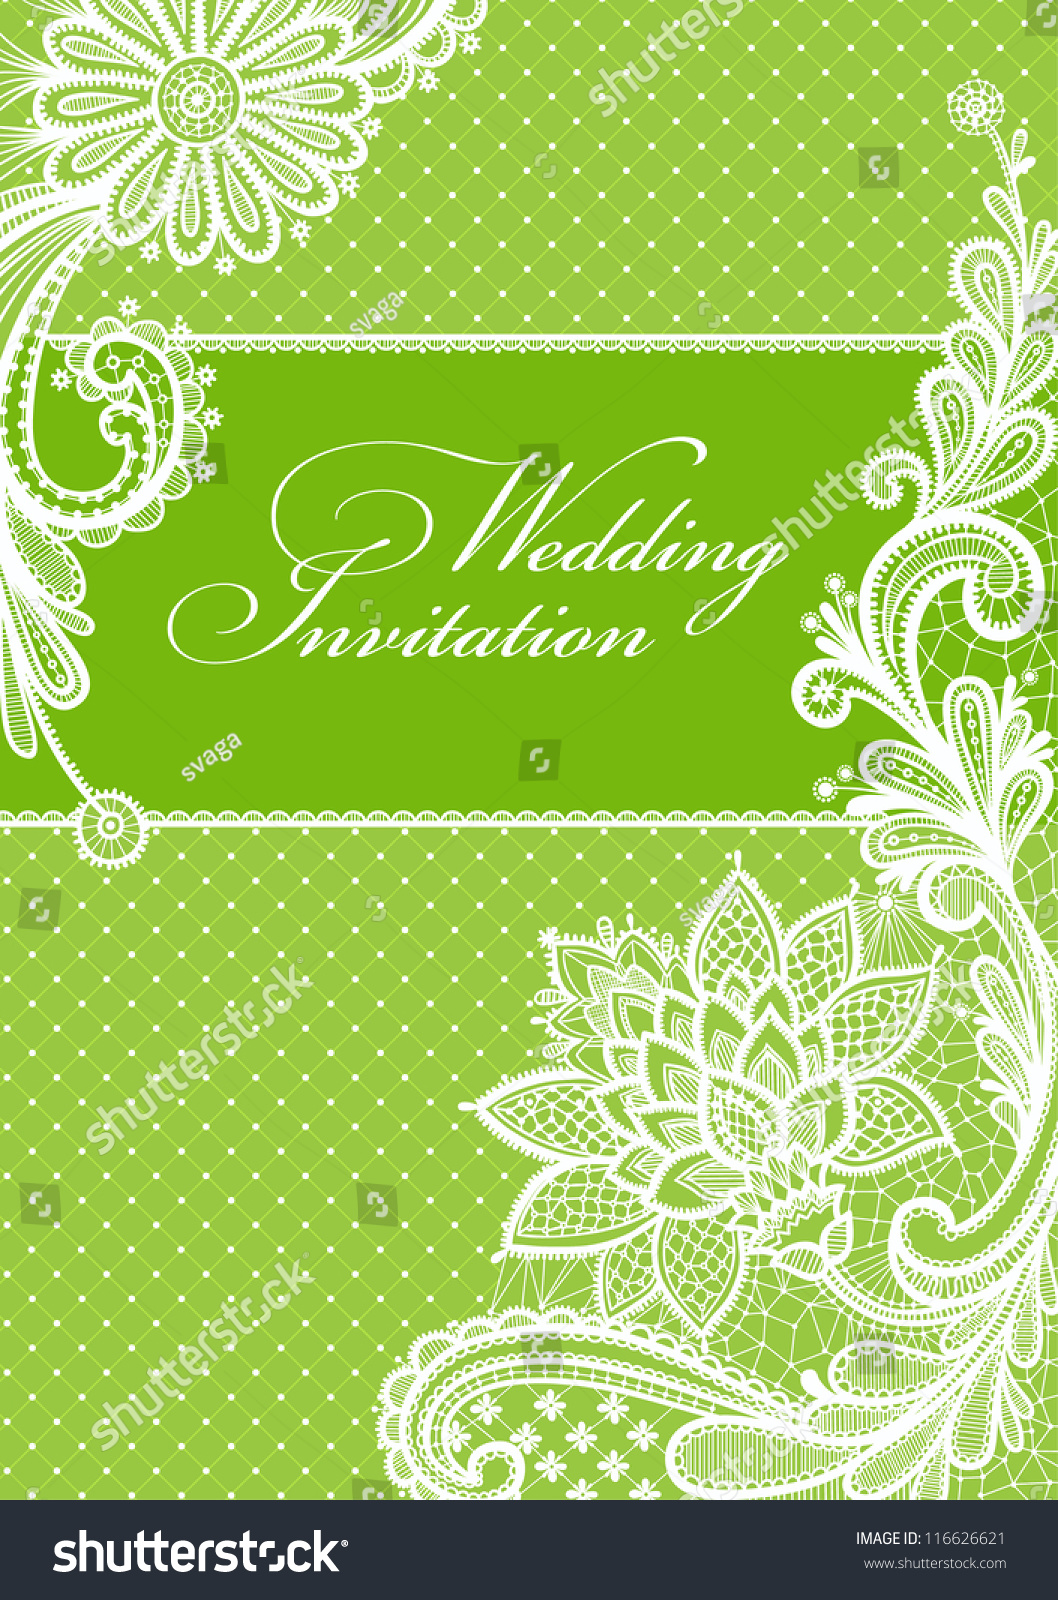 Wedding Invitation Lace Background With A Place For Text Vintage Vector Design: Lace Wedding Invite Backgrounds At Reisefeber.org